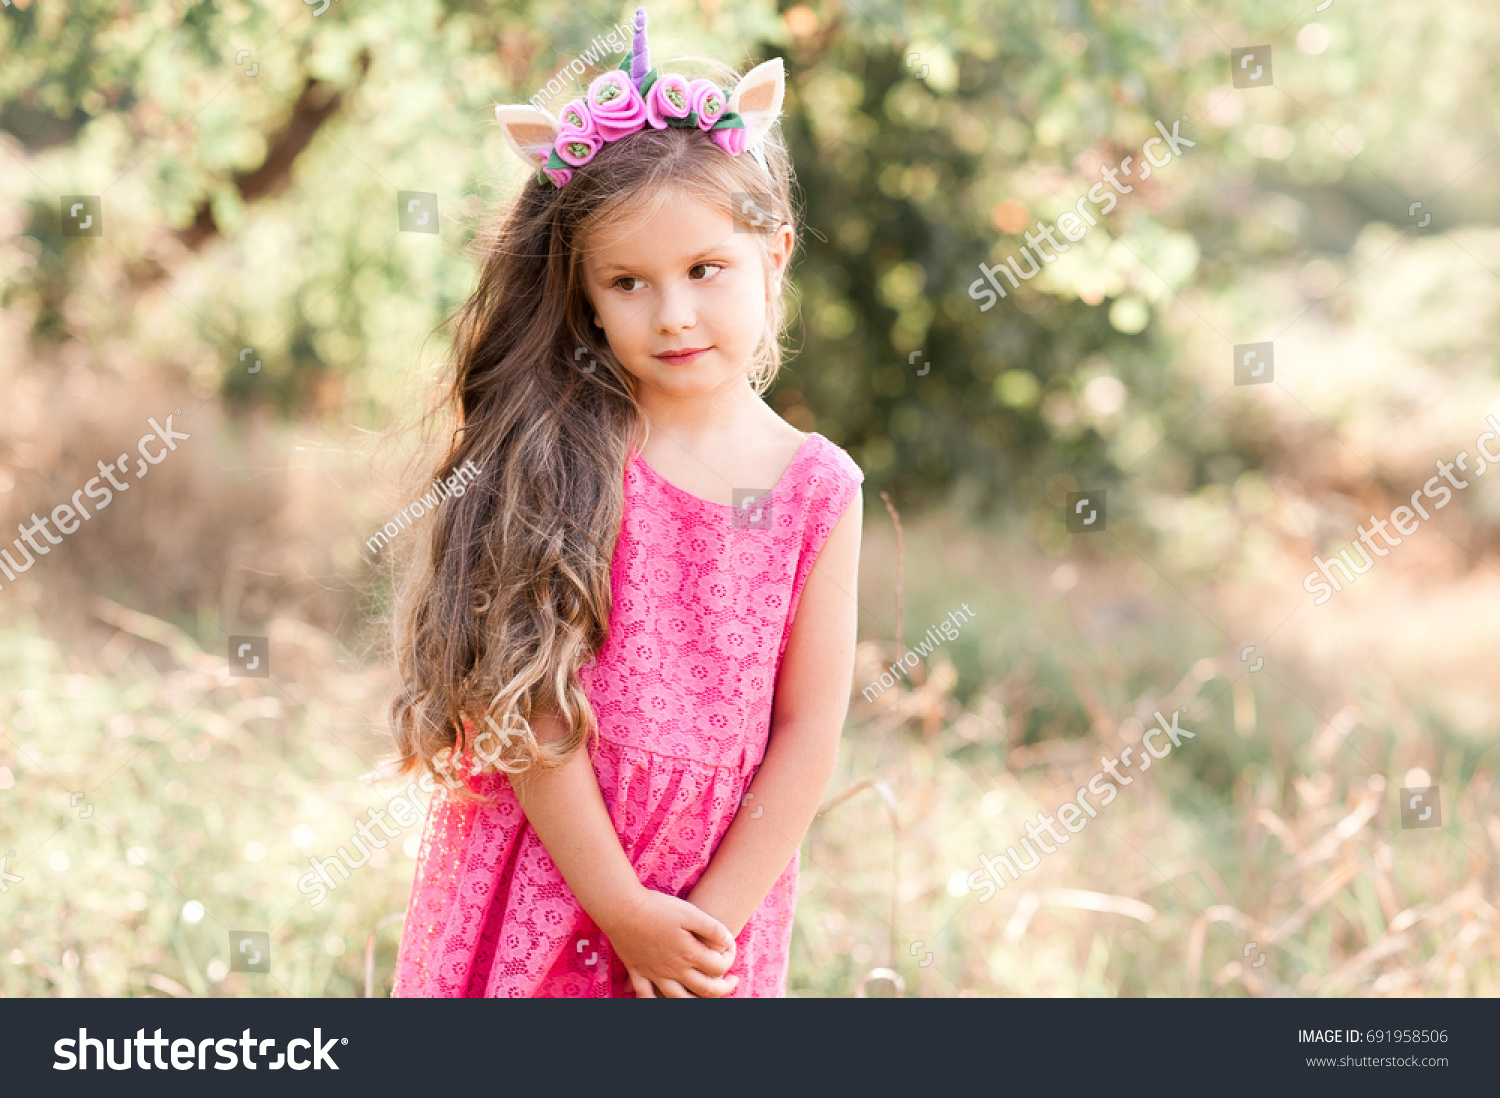 cute baby girl 45 year old stock photo (edit now) 691958506